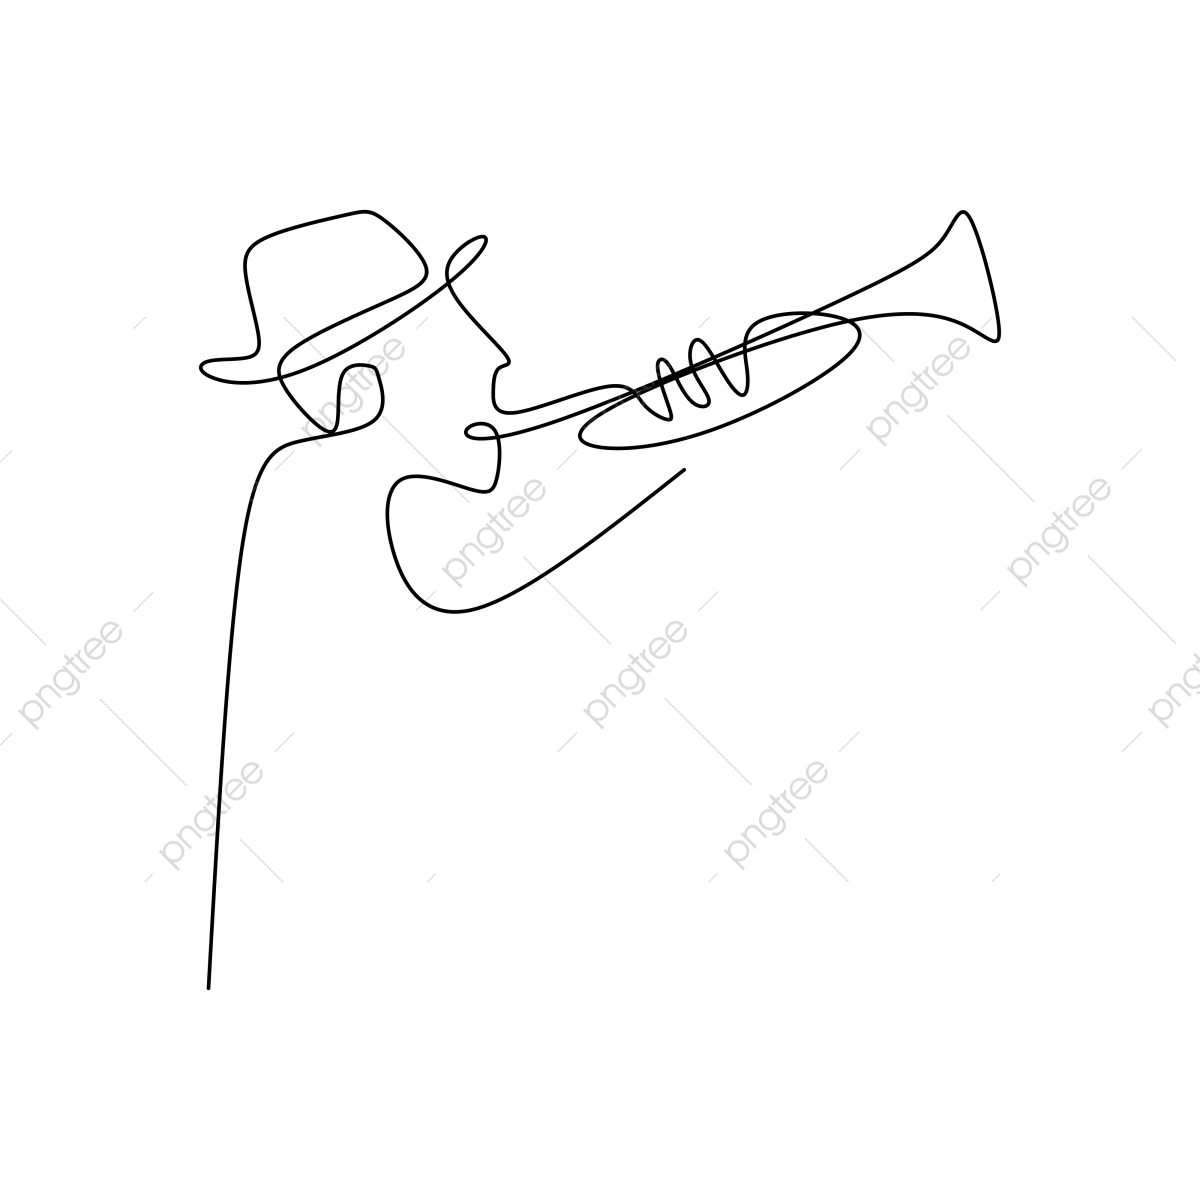 Continuous Line Drawing Of Jazz Musicians Playing Trumpet Music